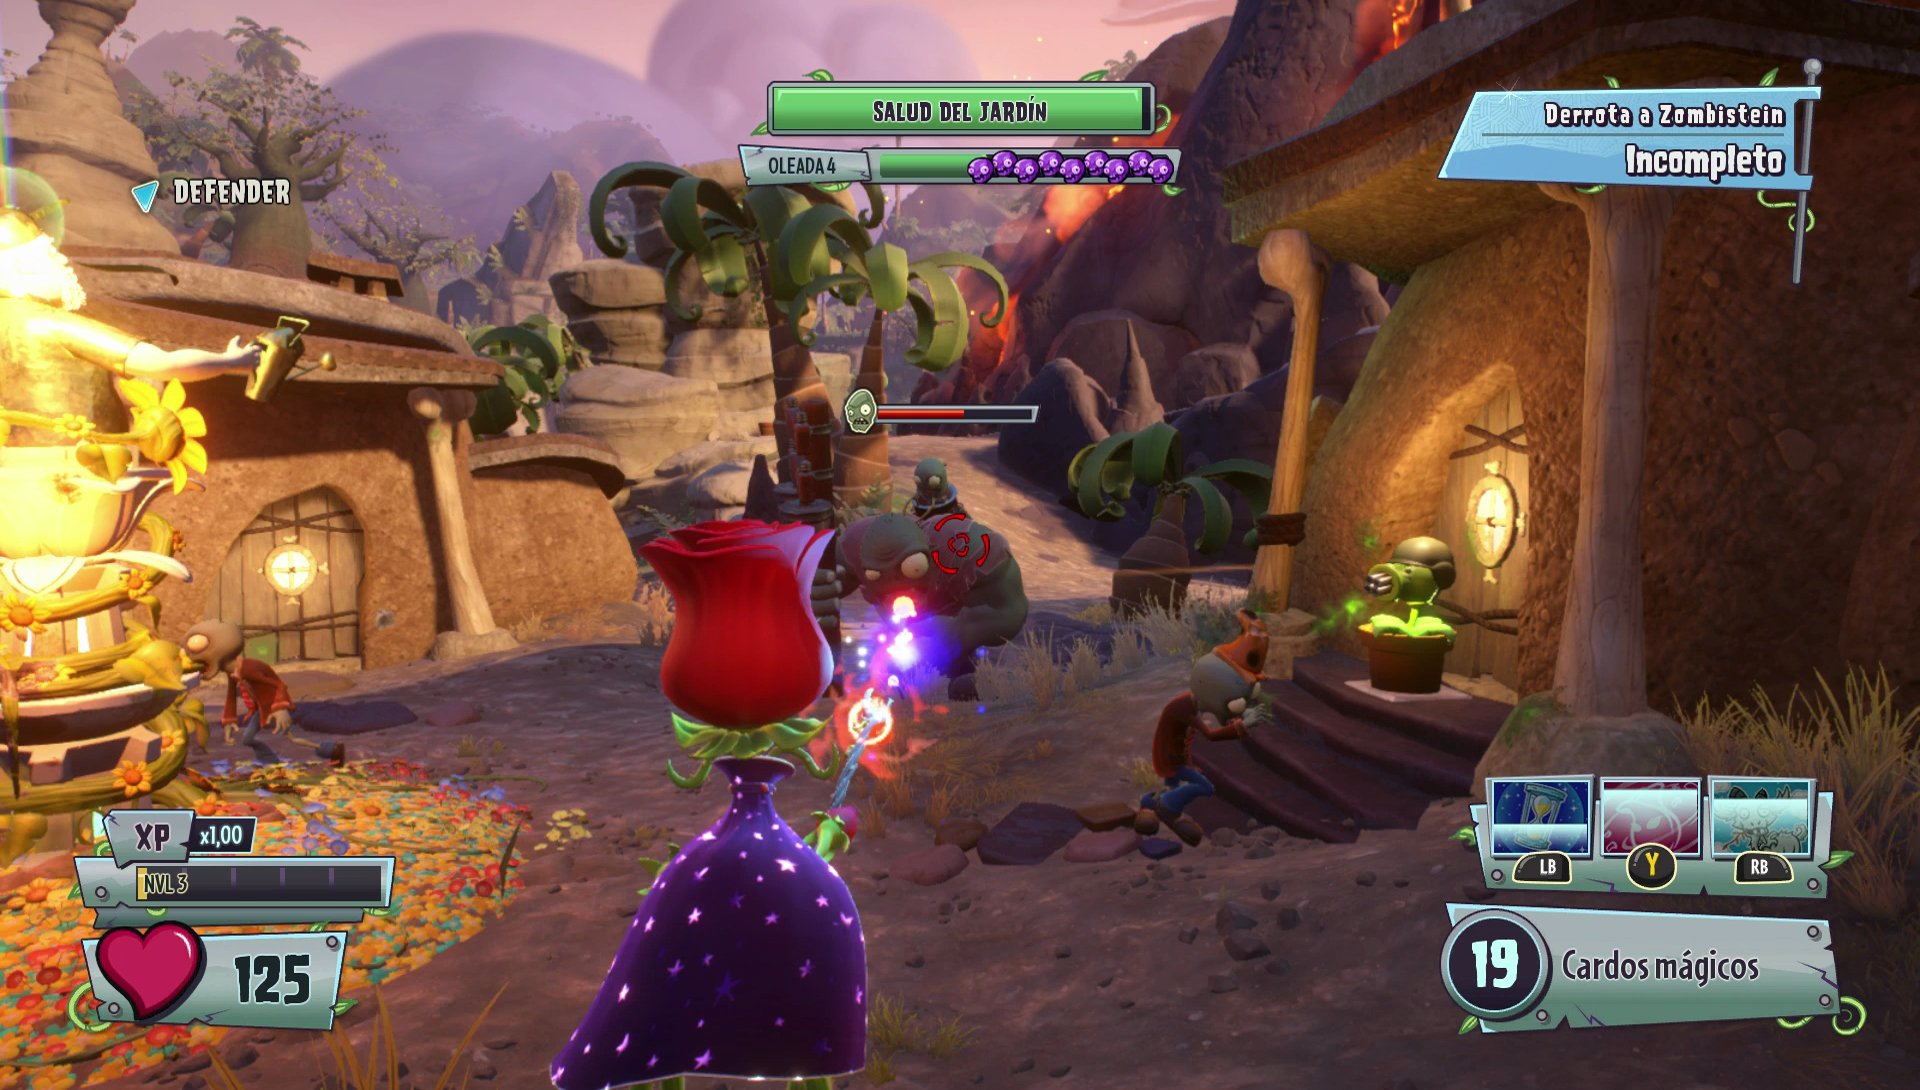 Im genes de plants vs zombies garden warfare 2 para pc for Plante vs zombie garden warfare 2